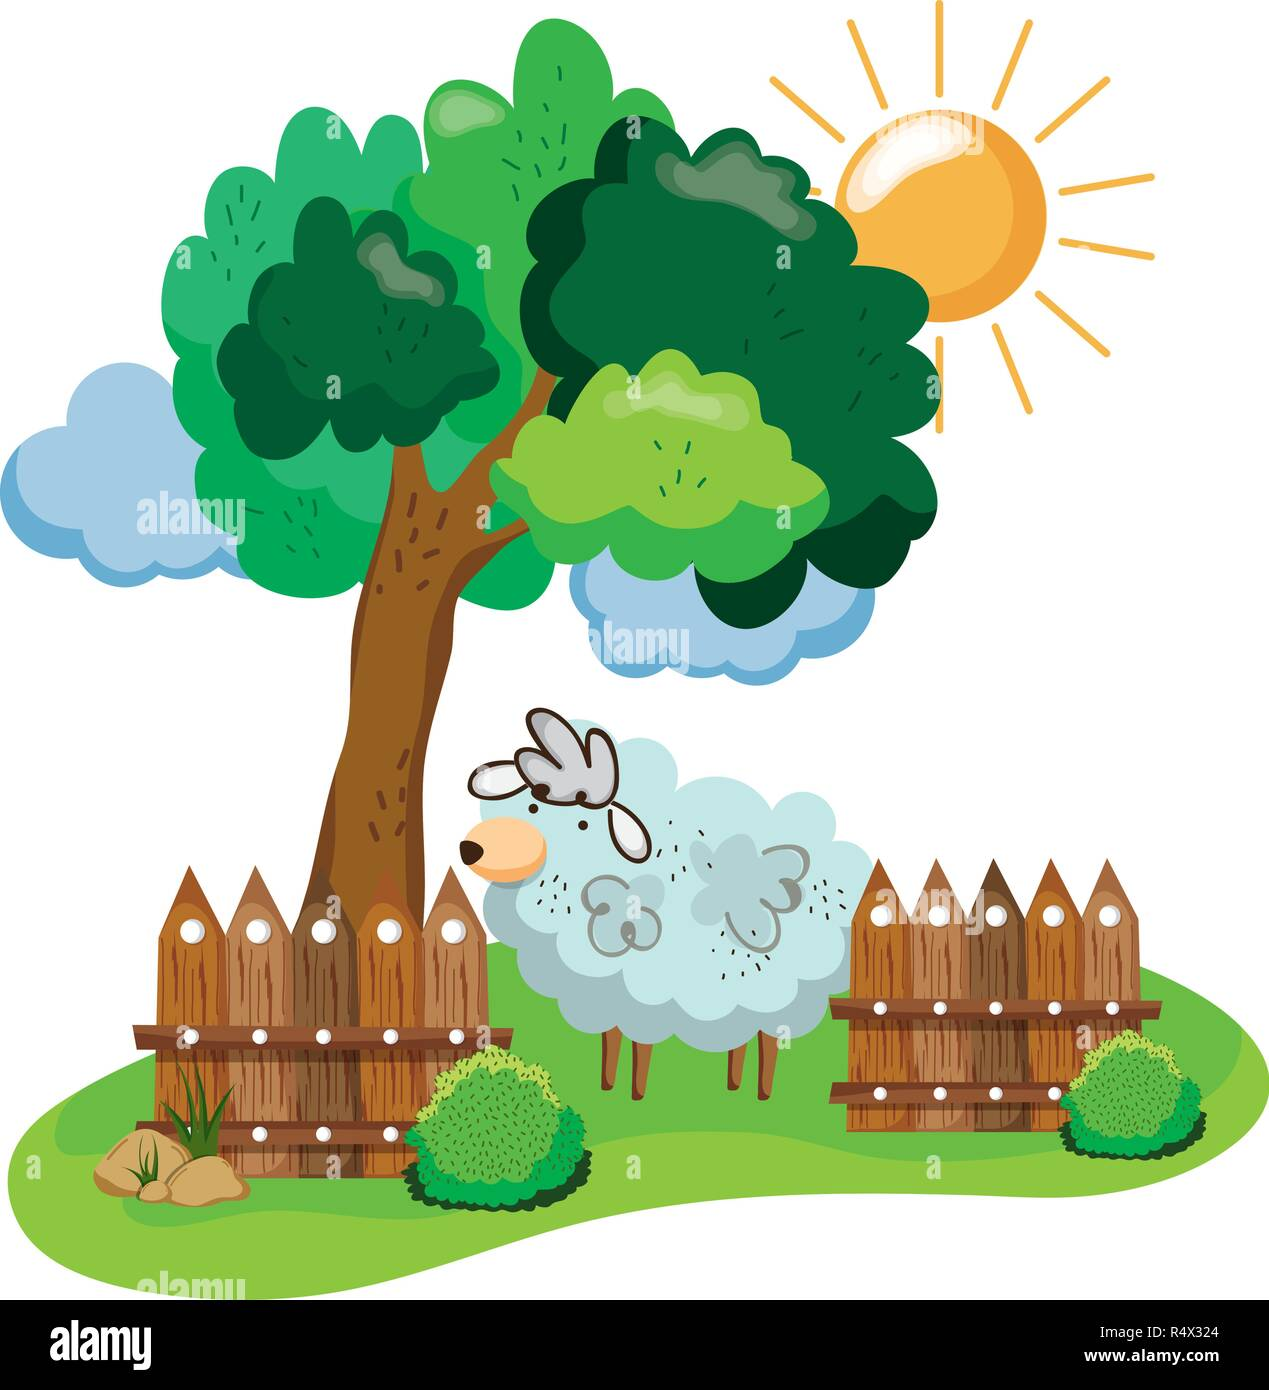 Cute Farm Sheep With Tree Cartoon Vector Illustration Graphic Design Stock Vector Image Art Alamy Some trees can live up to several drawing trees might not seem so difficult at first. https www alamy com cute farm sheep with tree cartoon vector illustration graphic design image226766572 html